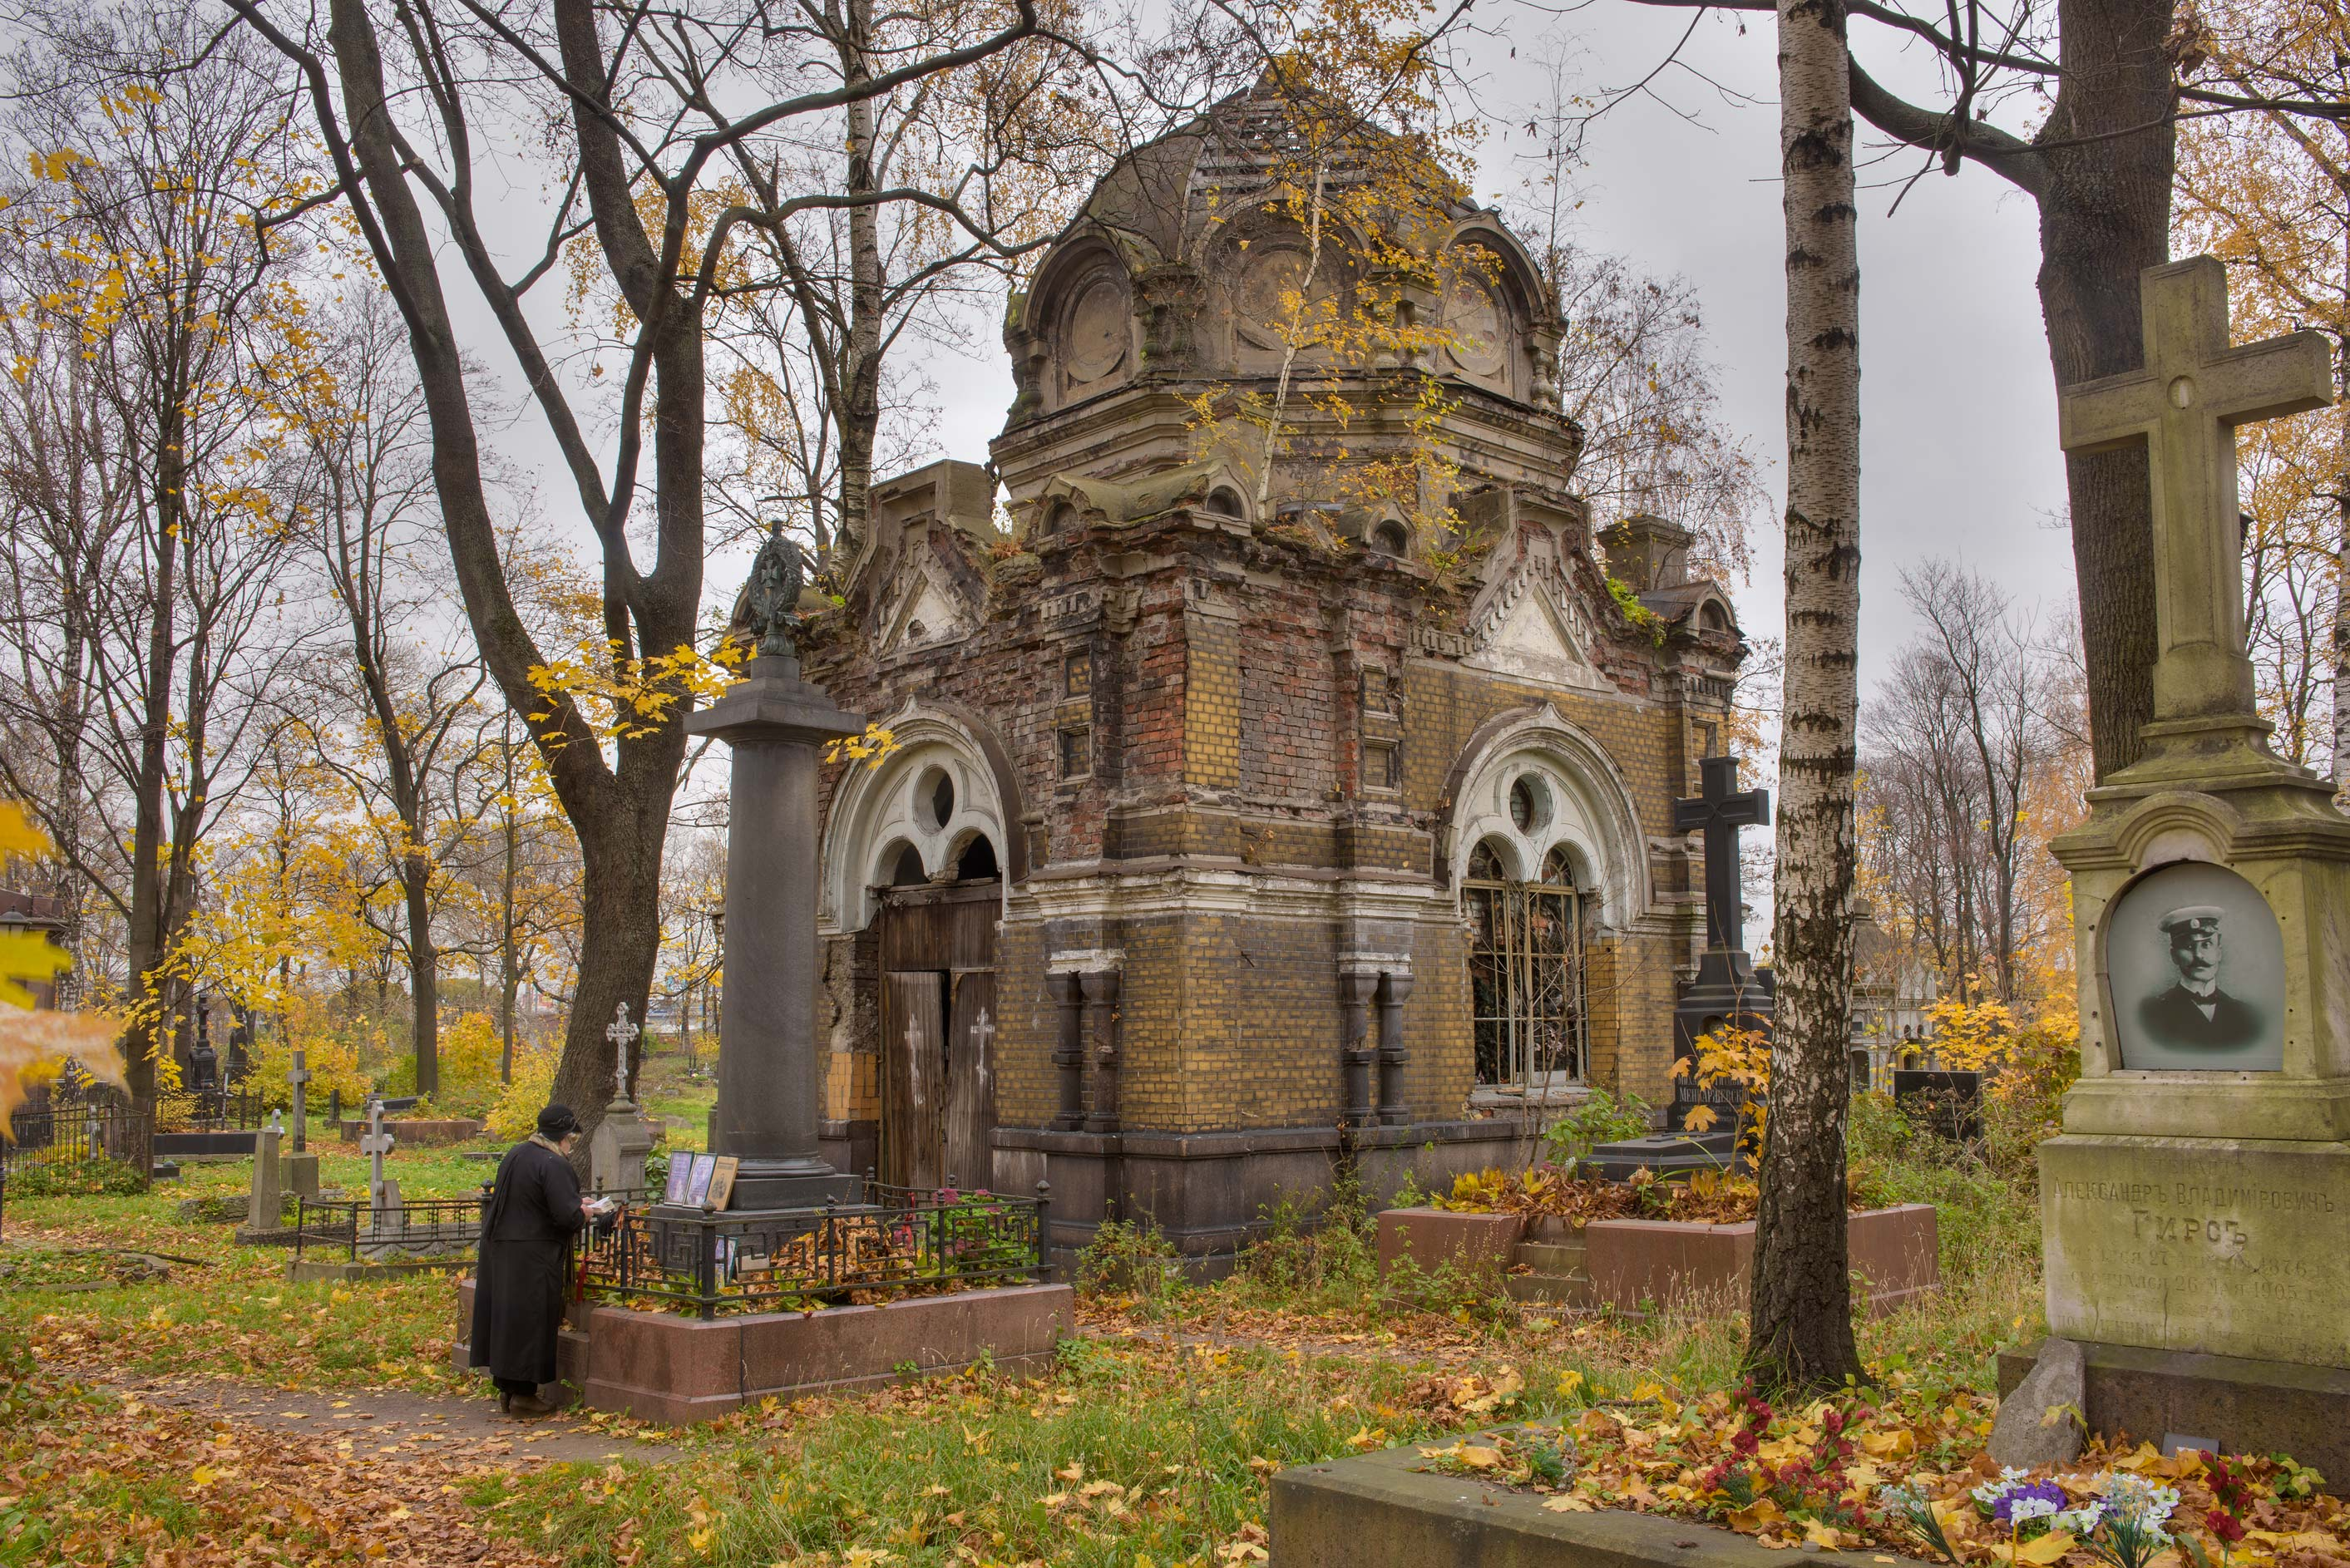 Stone mausoleum in Nikolskoe Cemetery of Alexander Nevsky Lavra. St.Petersburg, Russia